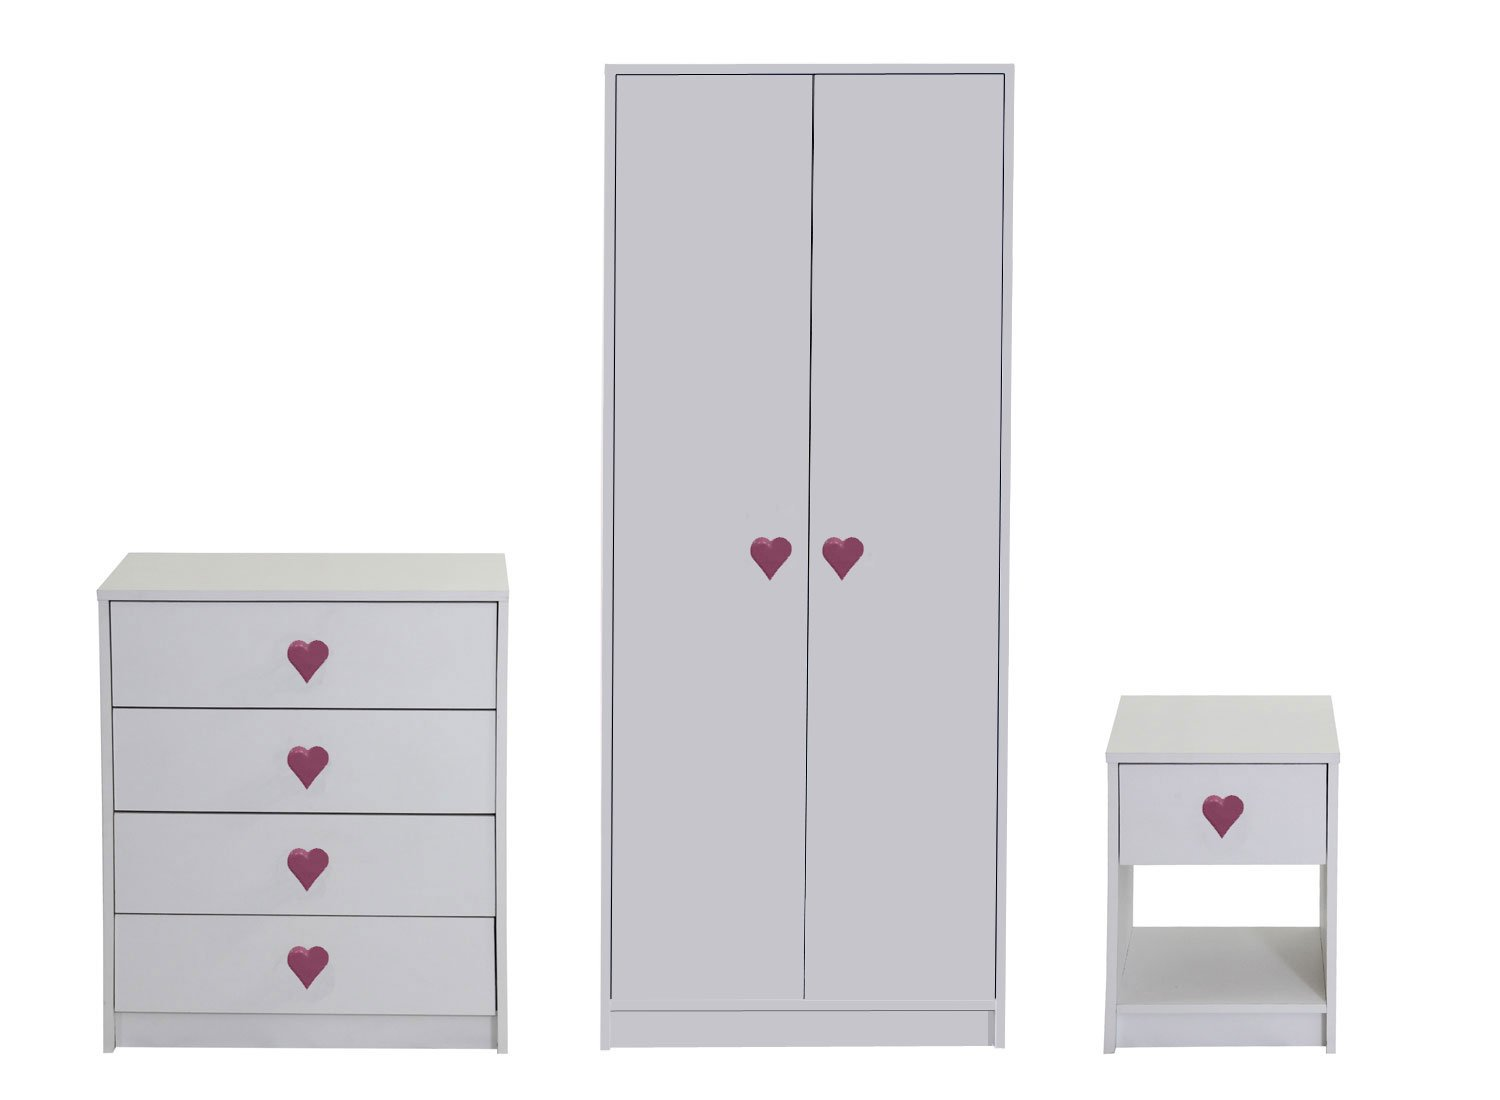 Devoted2Home Hearts Children's Bedroom Furniture Set with Wardrobe/Chest of Drawers/Bedside Cabinet, Wood, White, 49.8 x 66.8 x 139 cm, 3-Piece AA510902HEA